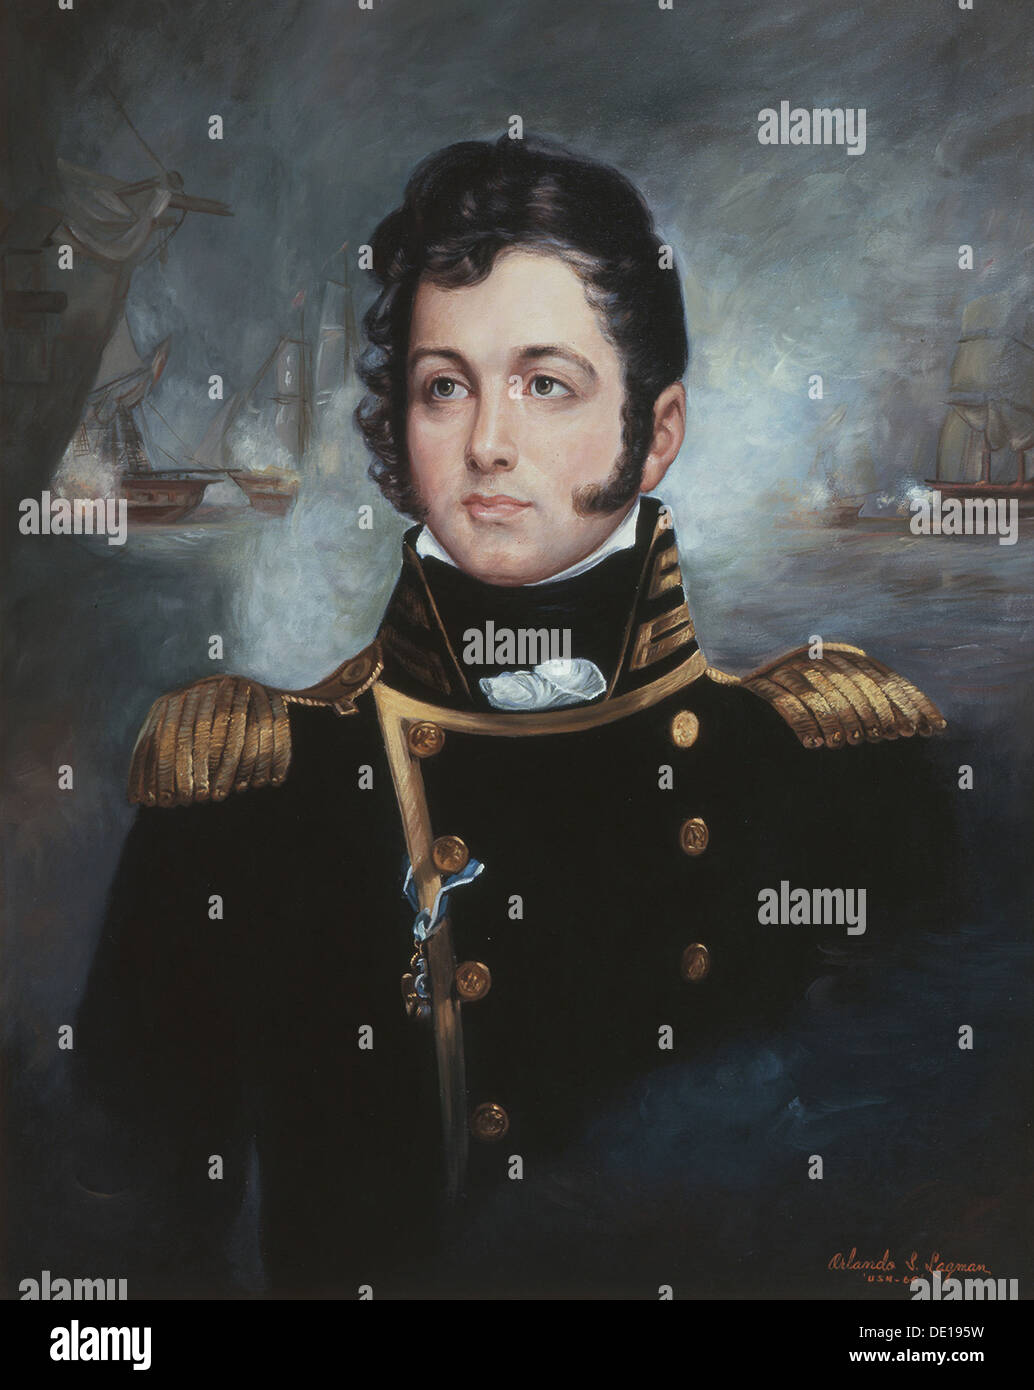 New Photo U.S War of 1812-6 Sizes! Navy Commodore Oliver Hazard Perry